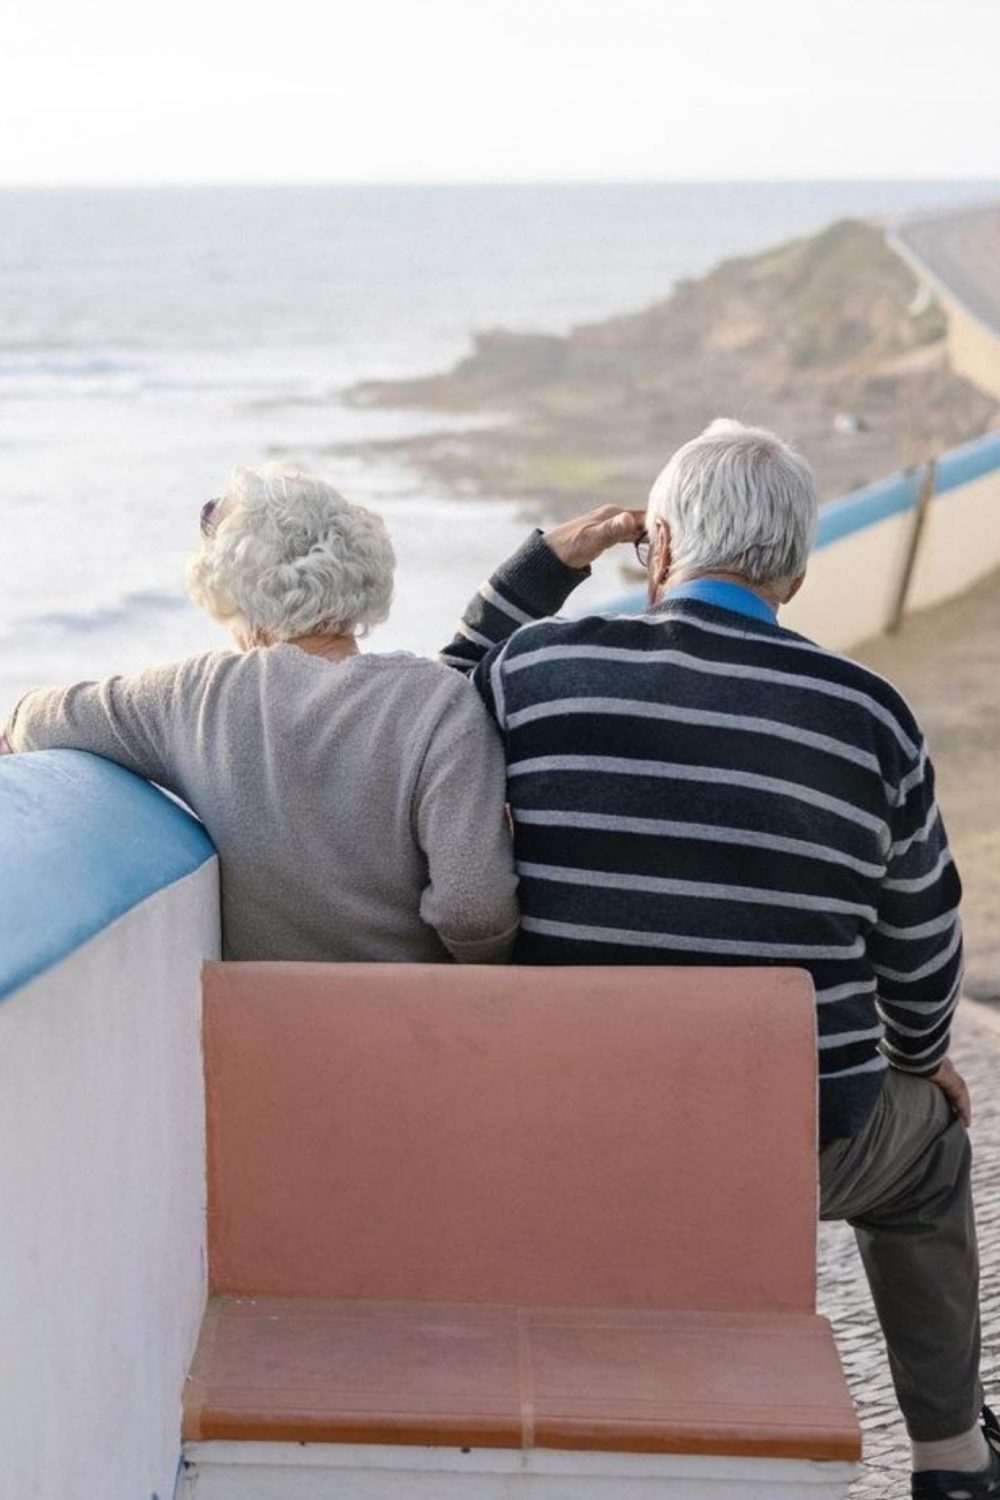 Old people by the sea